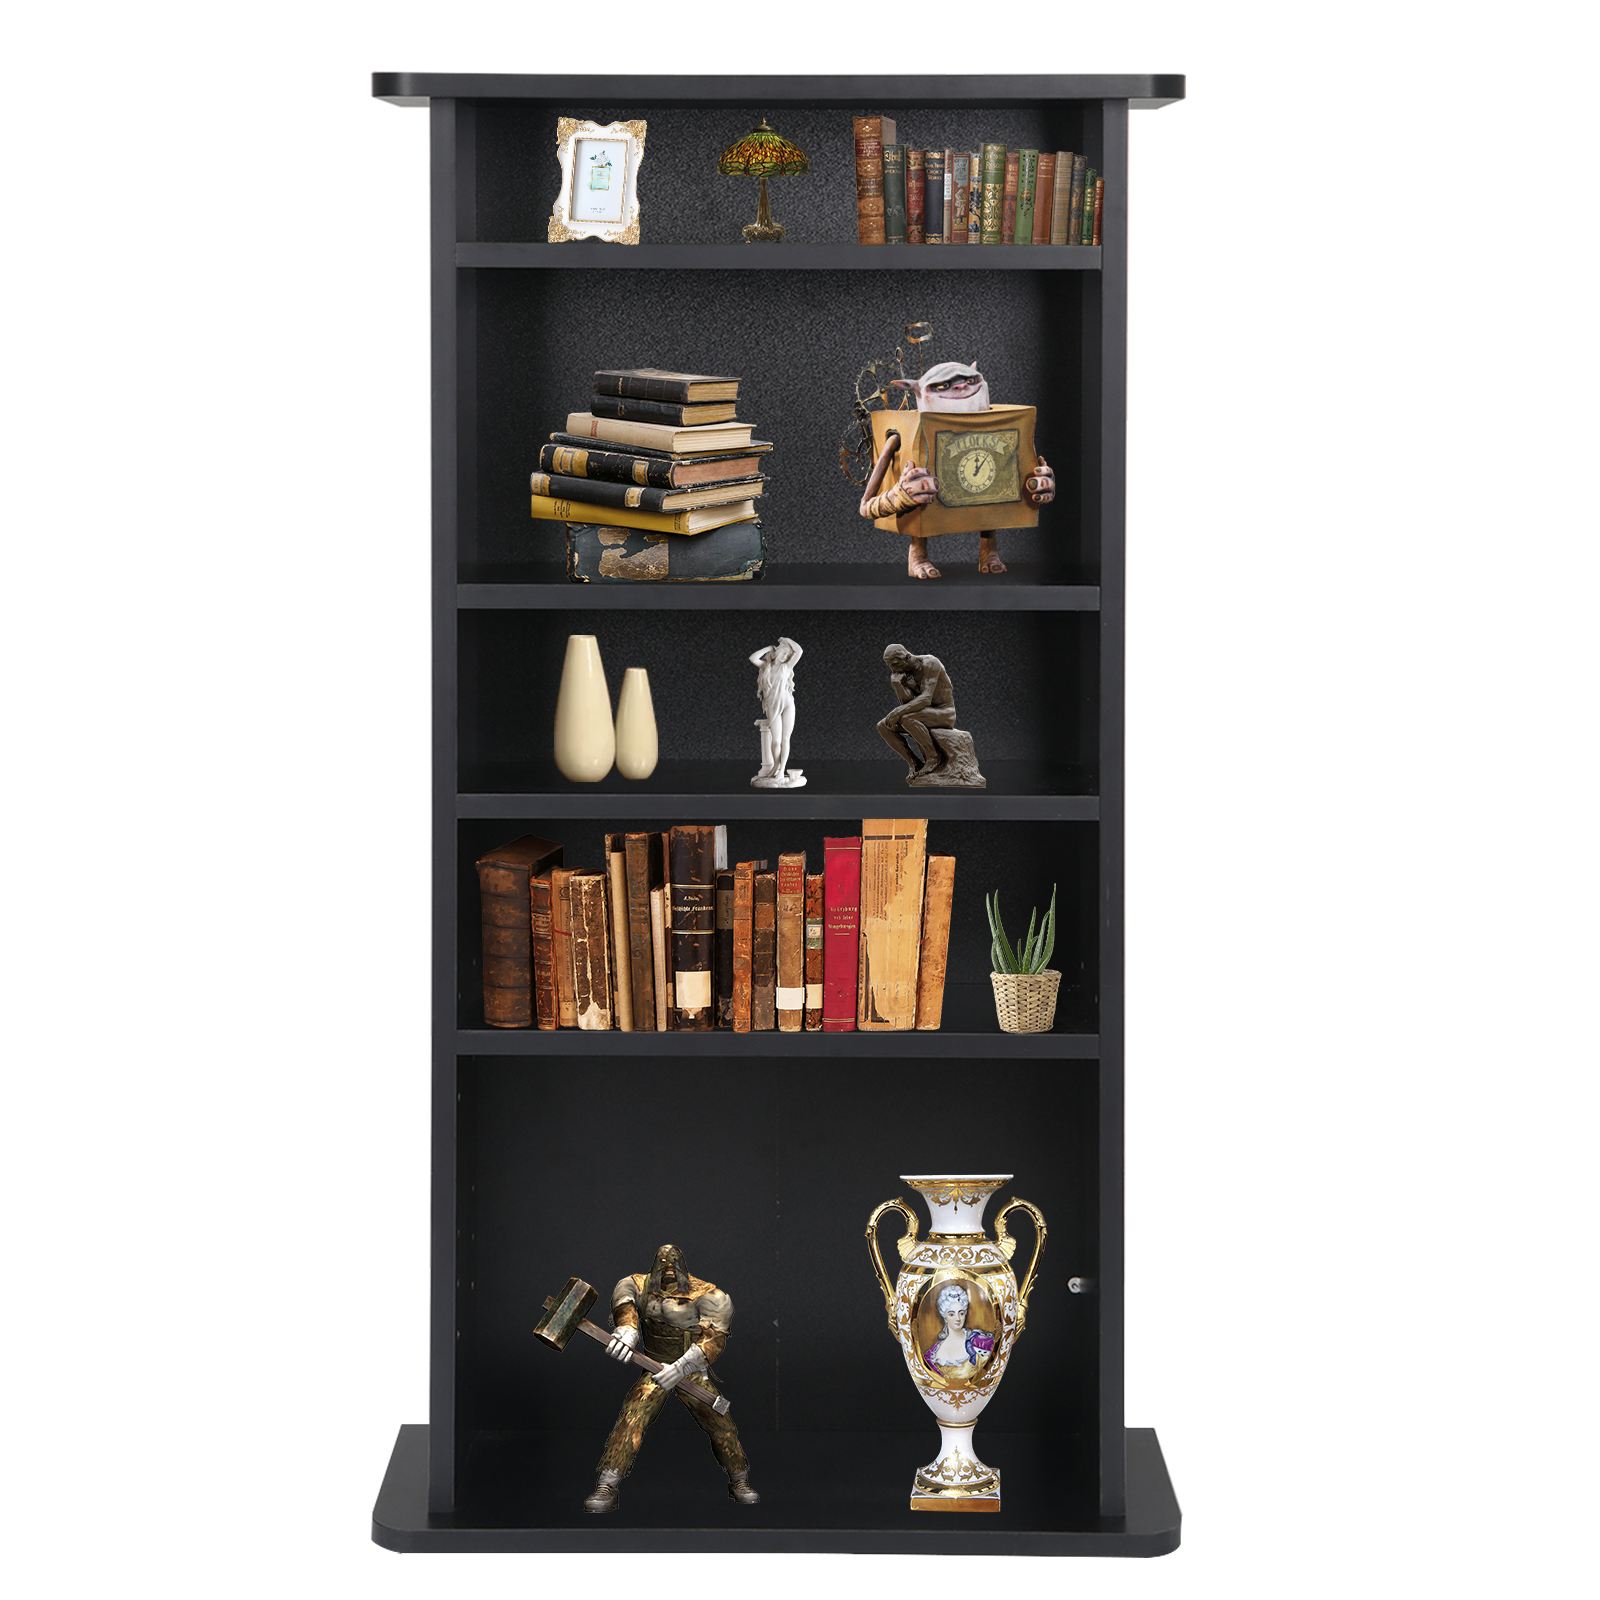 "Zeny Multimedia Cabinet CD/ DVD Media Storage Cabinet Shelf Organizer Stand, 7"" Depth, Flat Black Finish (Holds 132 BluRays, 108 DVDs, or 240 CDs)"